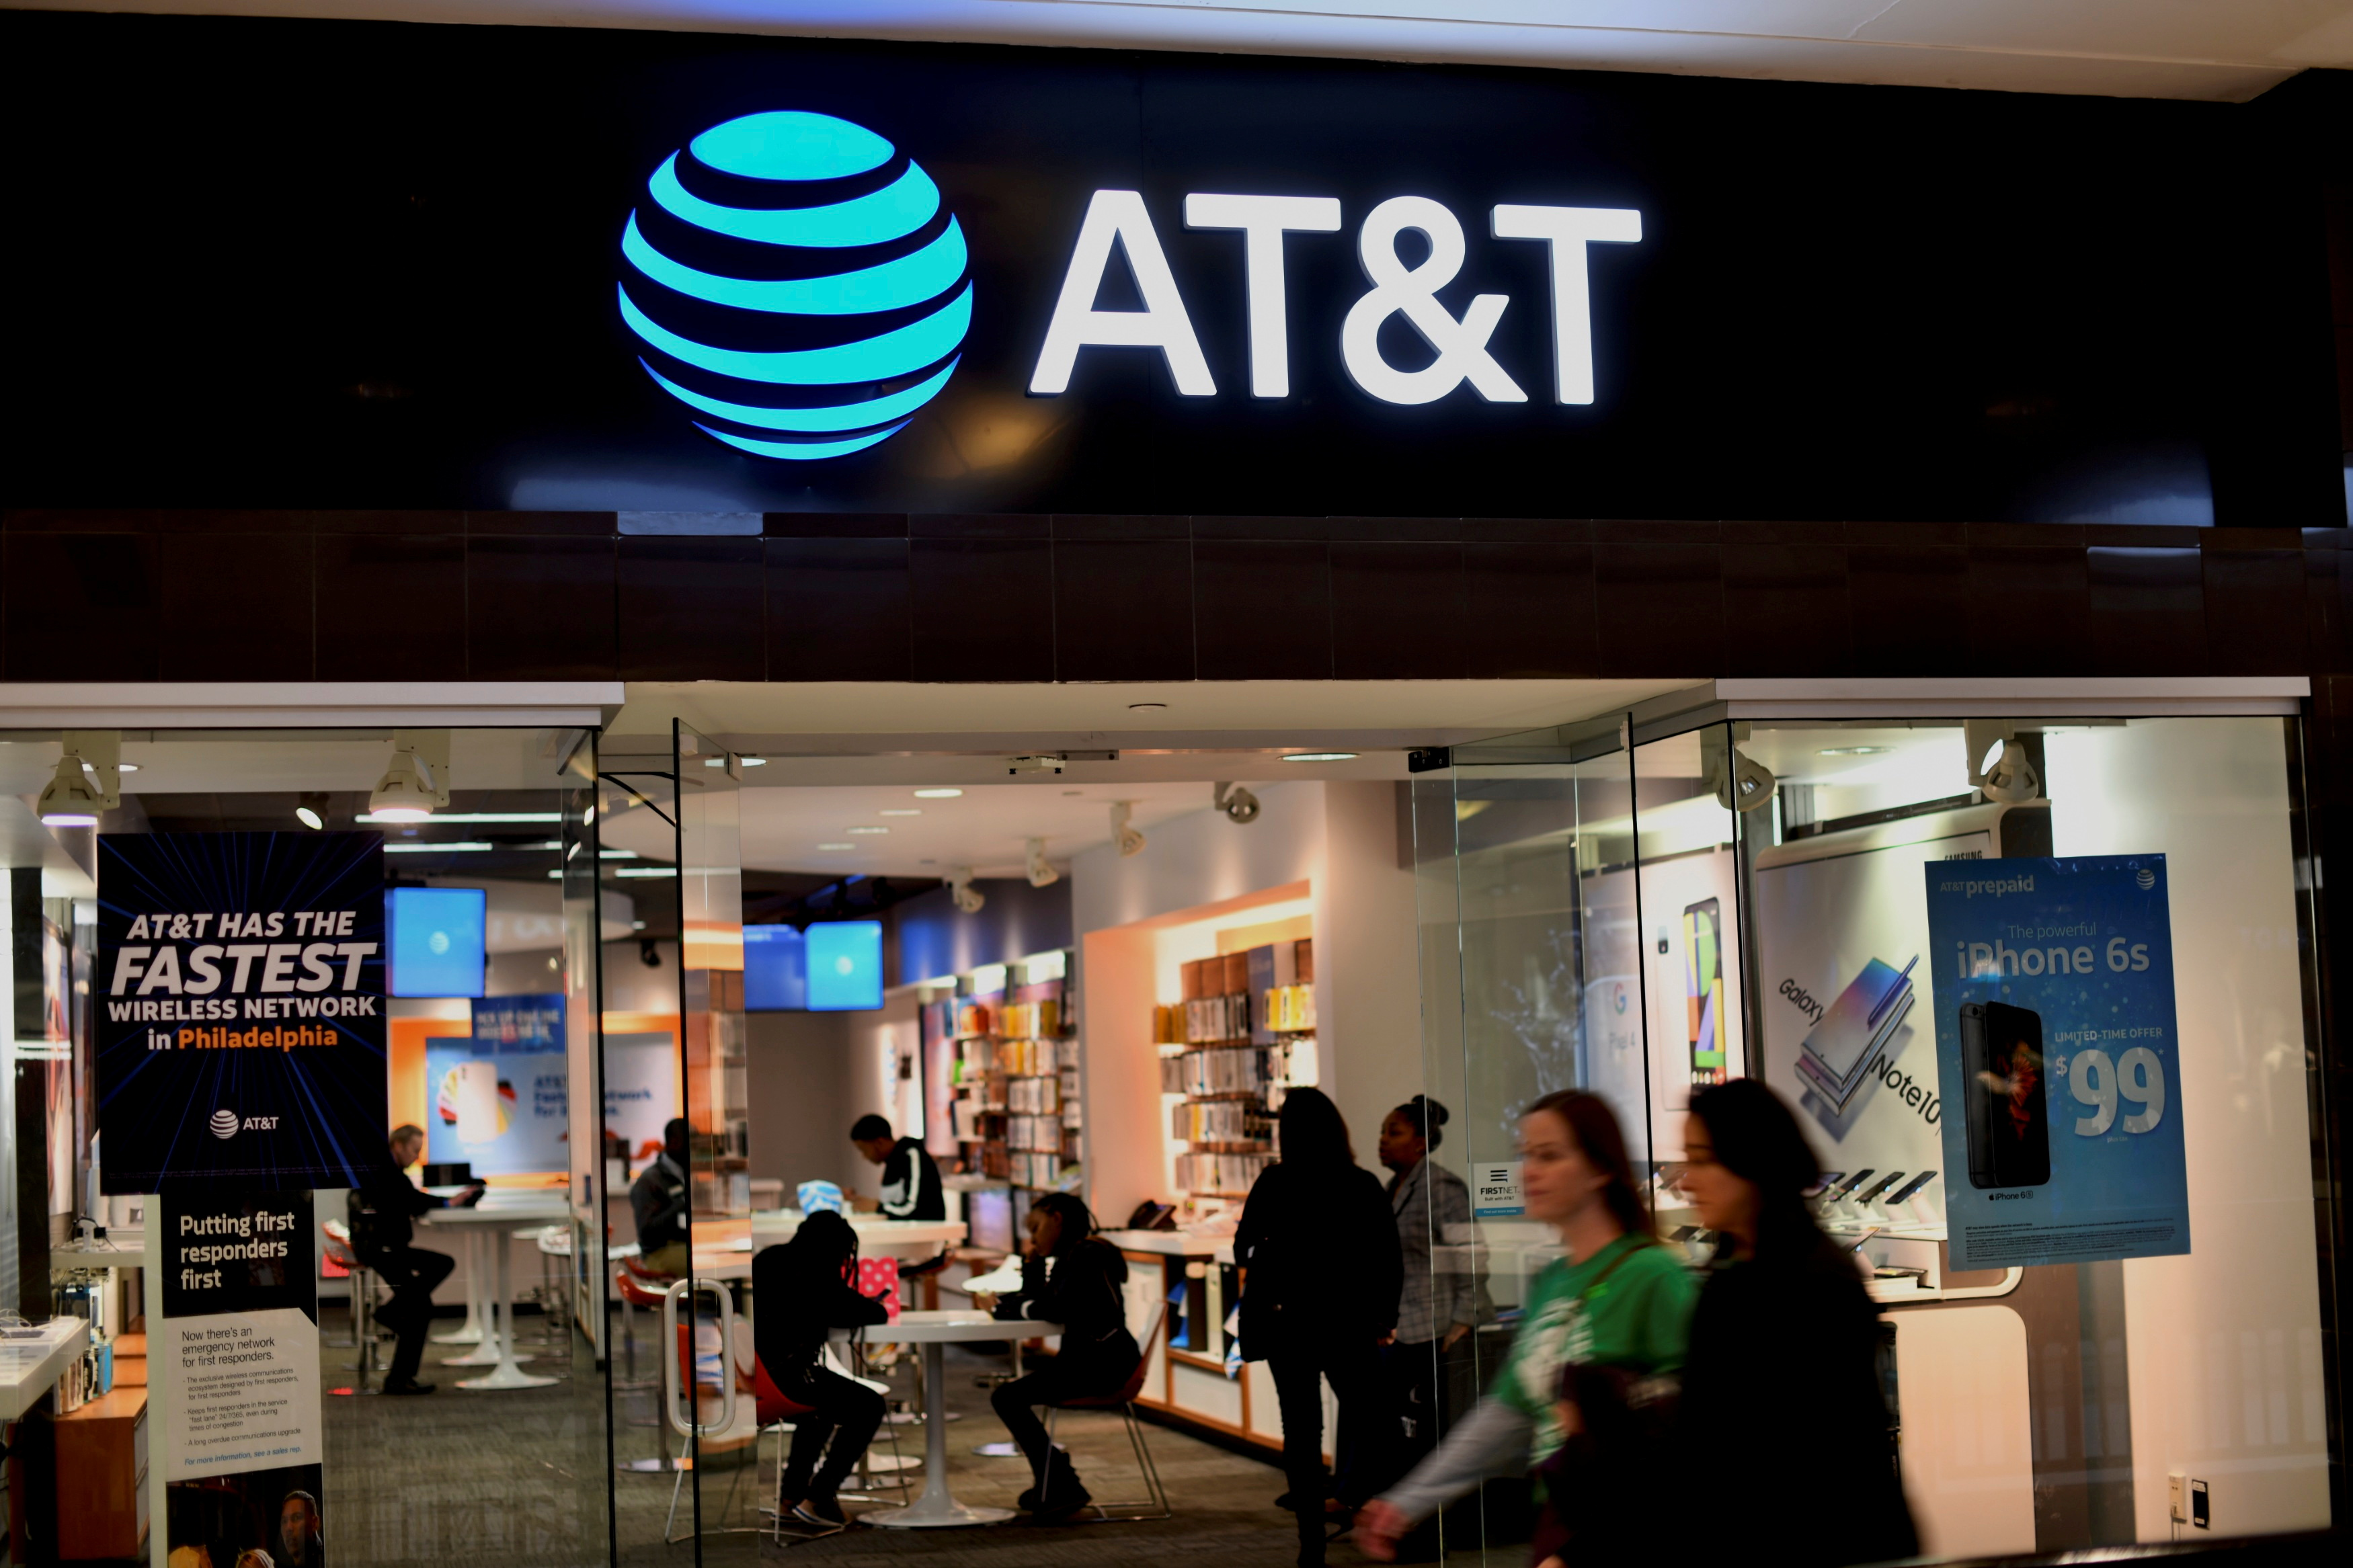 Shoppers walk past an AT&T store at the King of Prussia Mall in King of Prussia, Pennsylvania, U.S. November 22, 2019. REUTERS/Mark Makela/File Photo